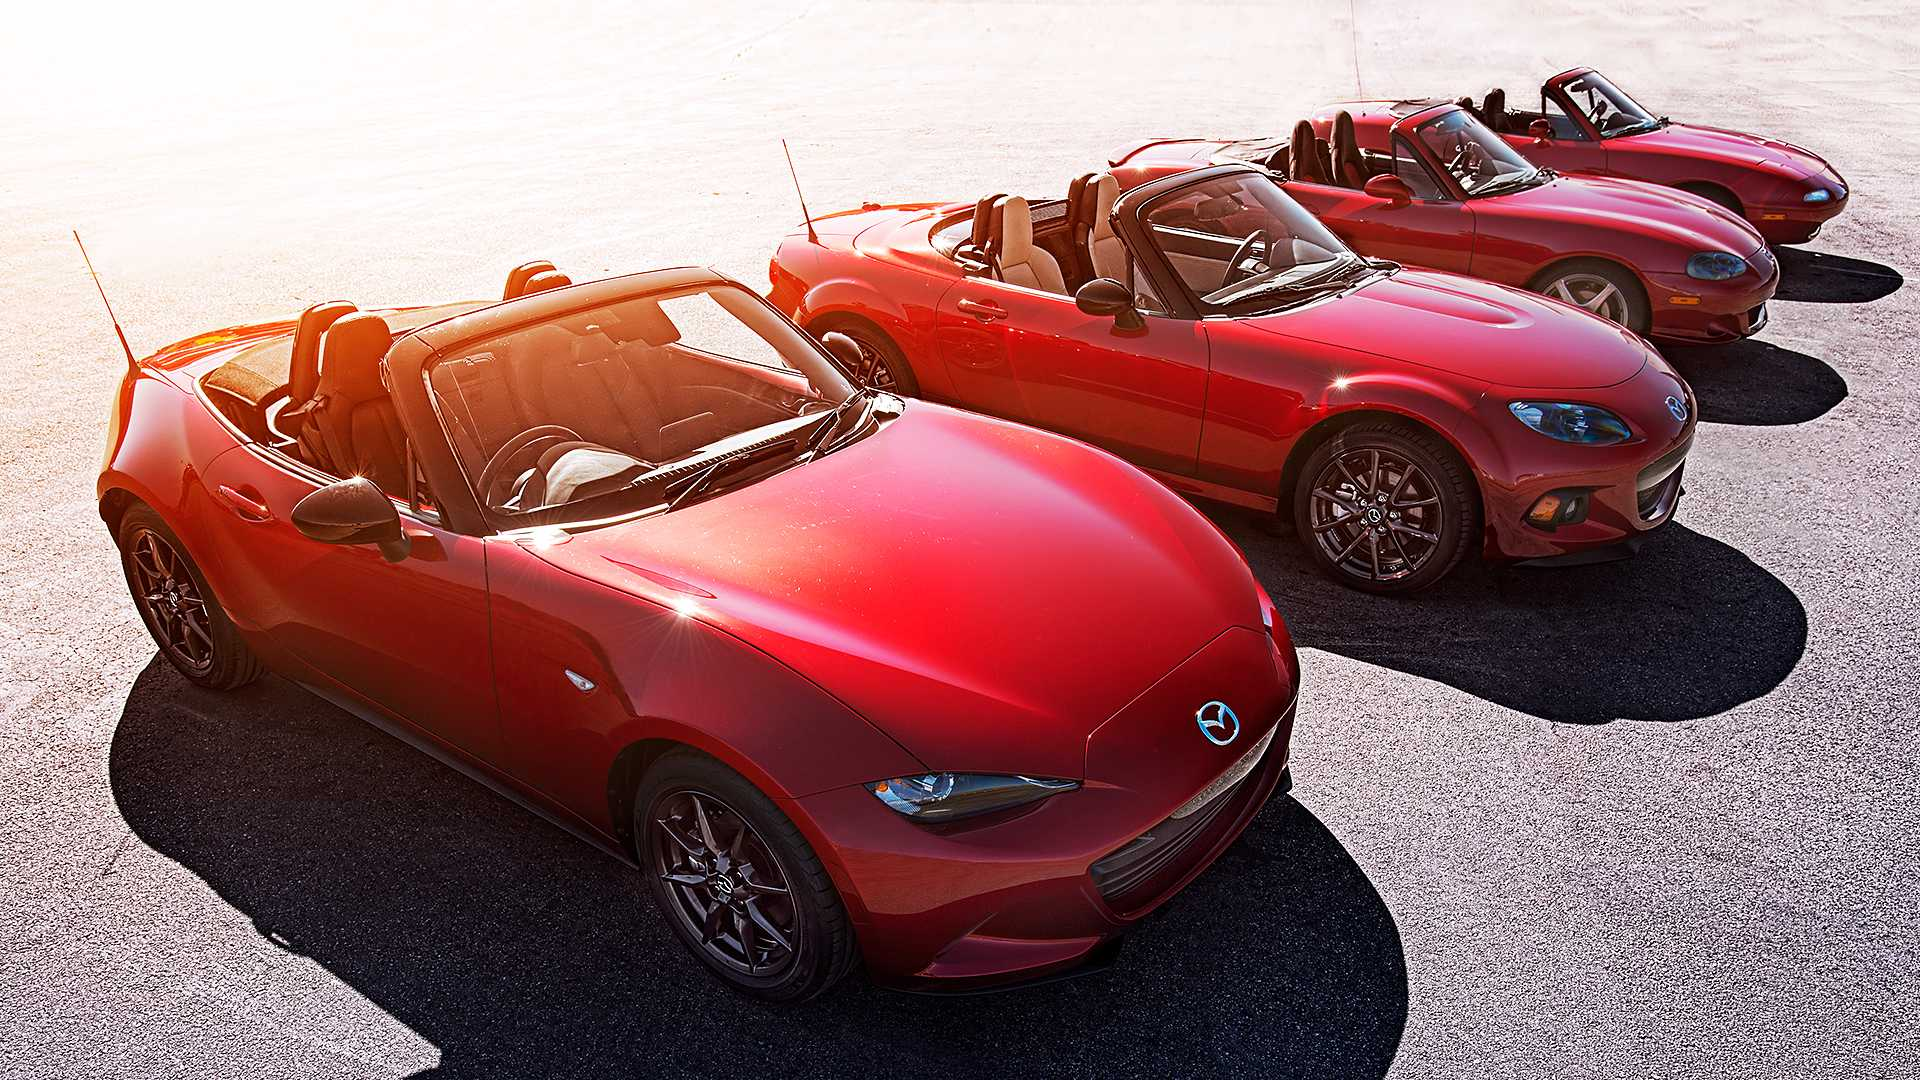 Next Mazda MX-5 could go hybrid, but remain lightweight